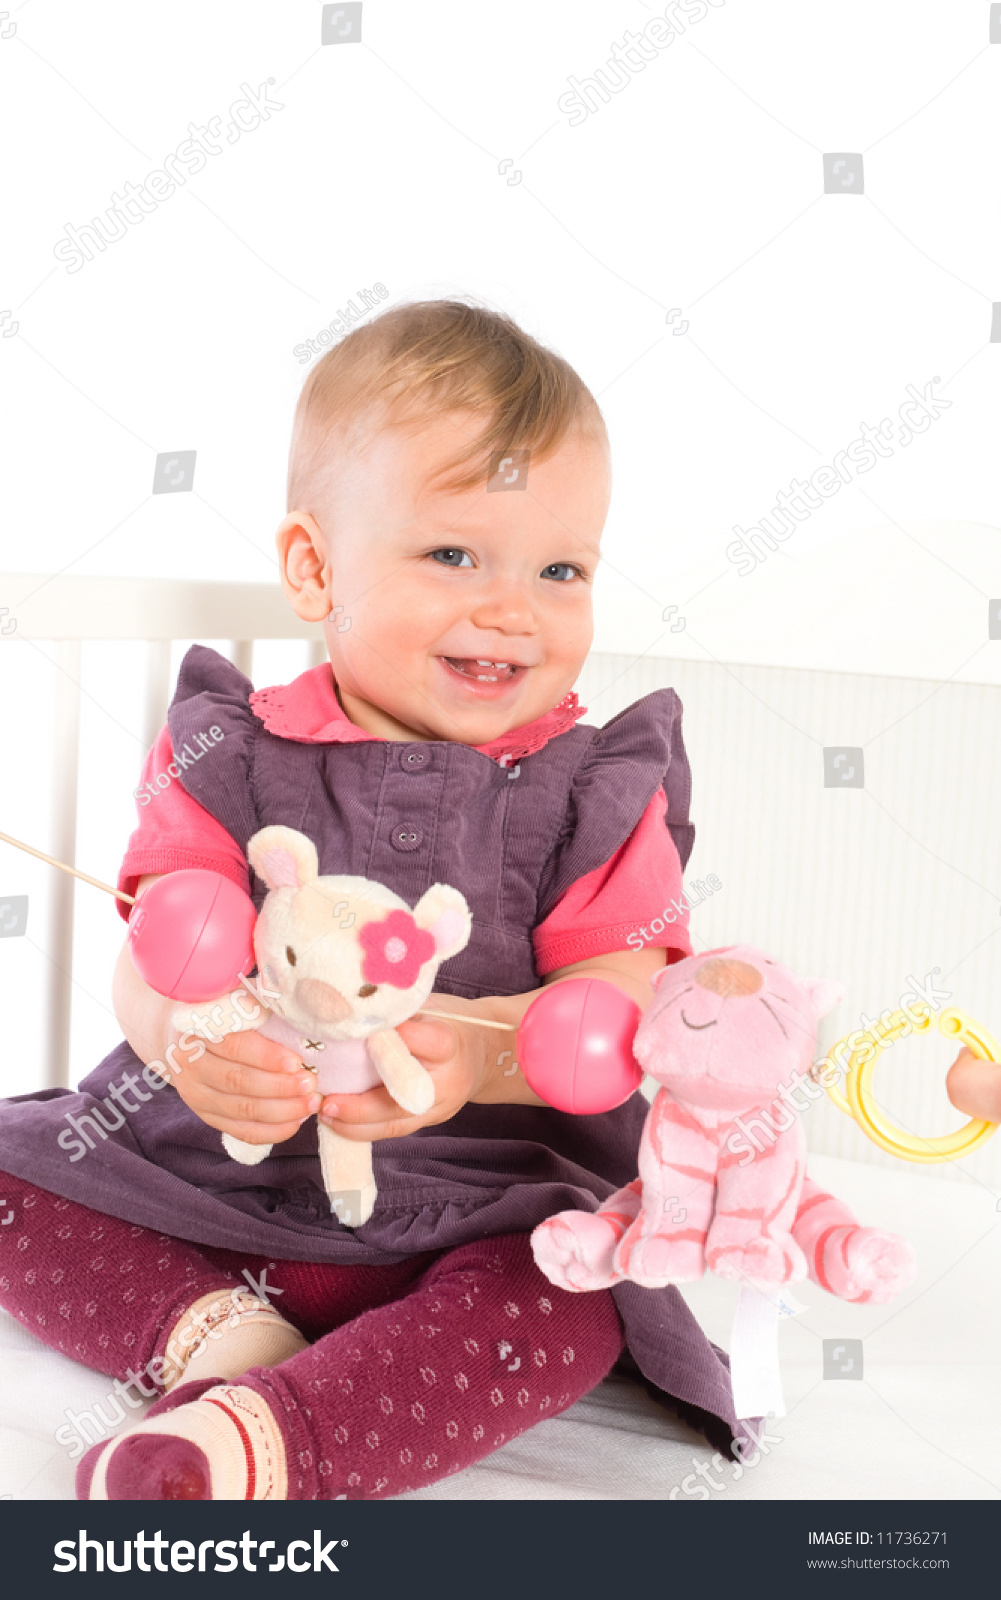 Cute Baby Girl (1 Year Old) Sitting On Crib, Holding Soft ...